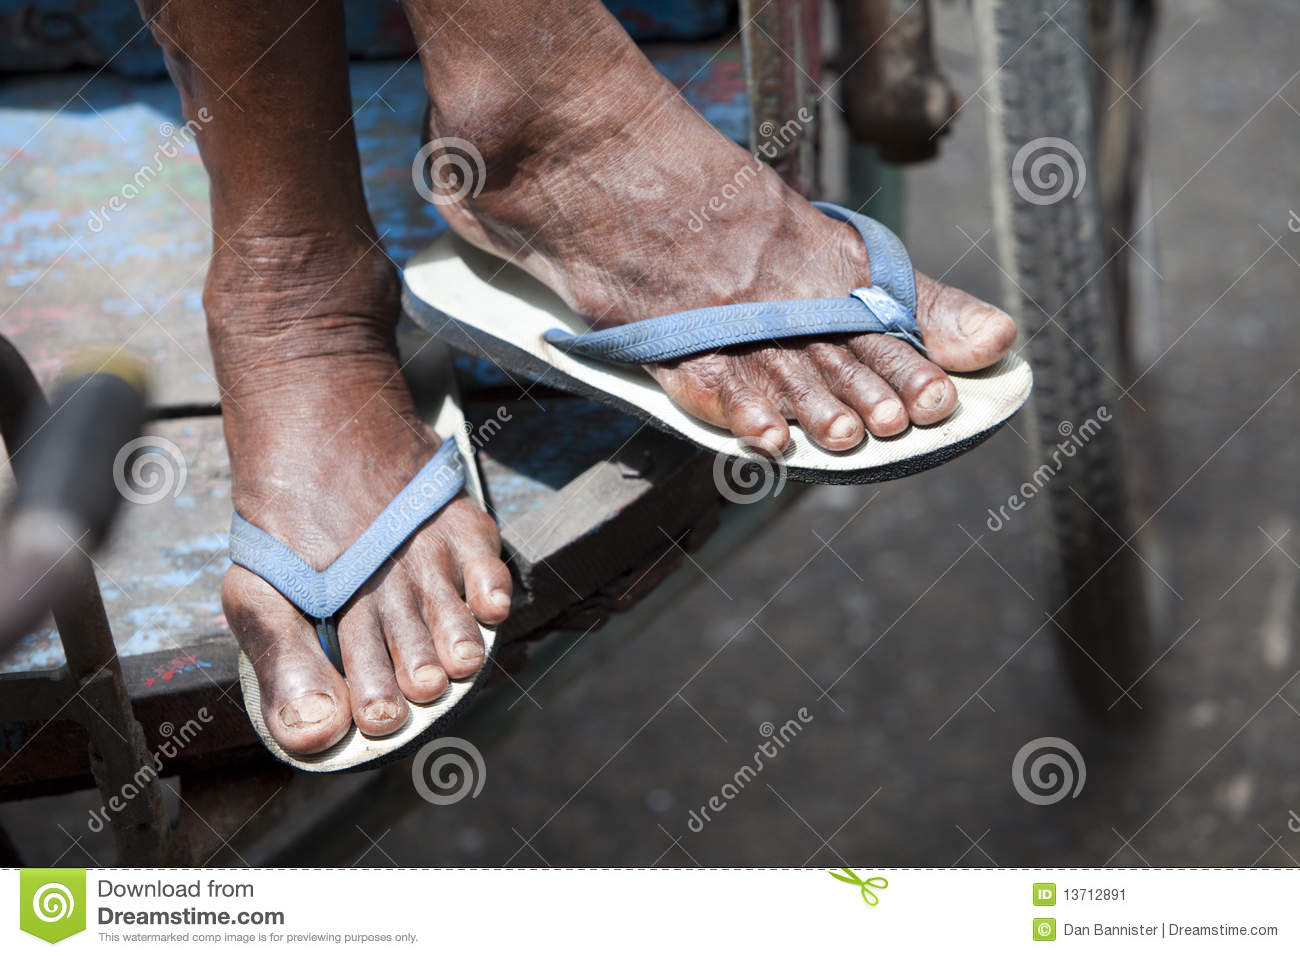 Feet in Flip-Flops On a Delivery Cart